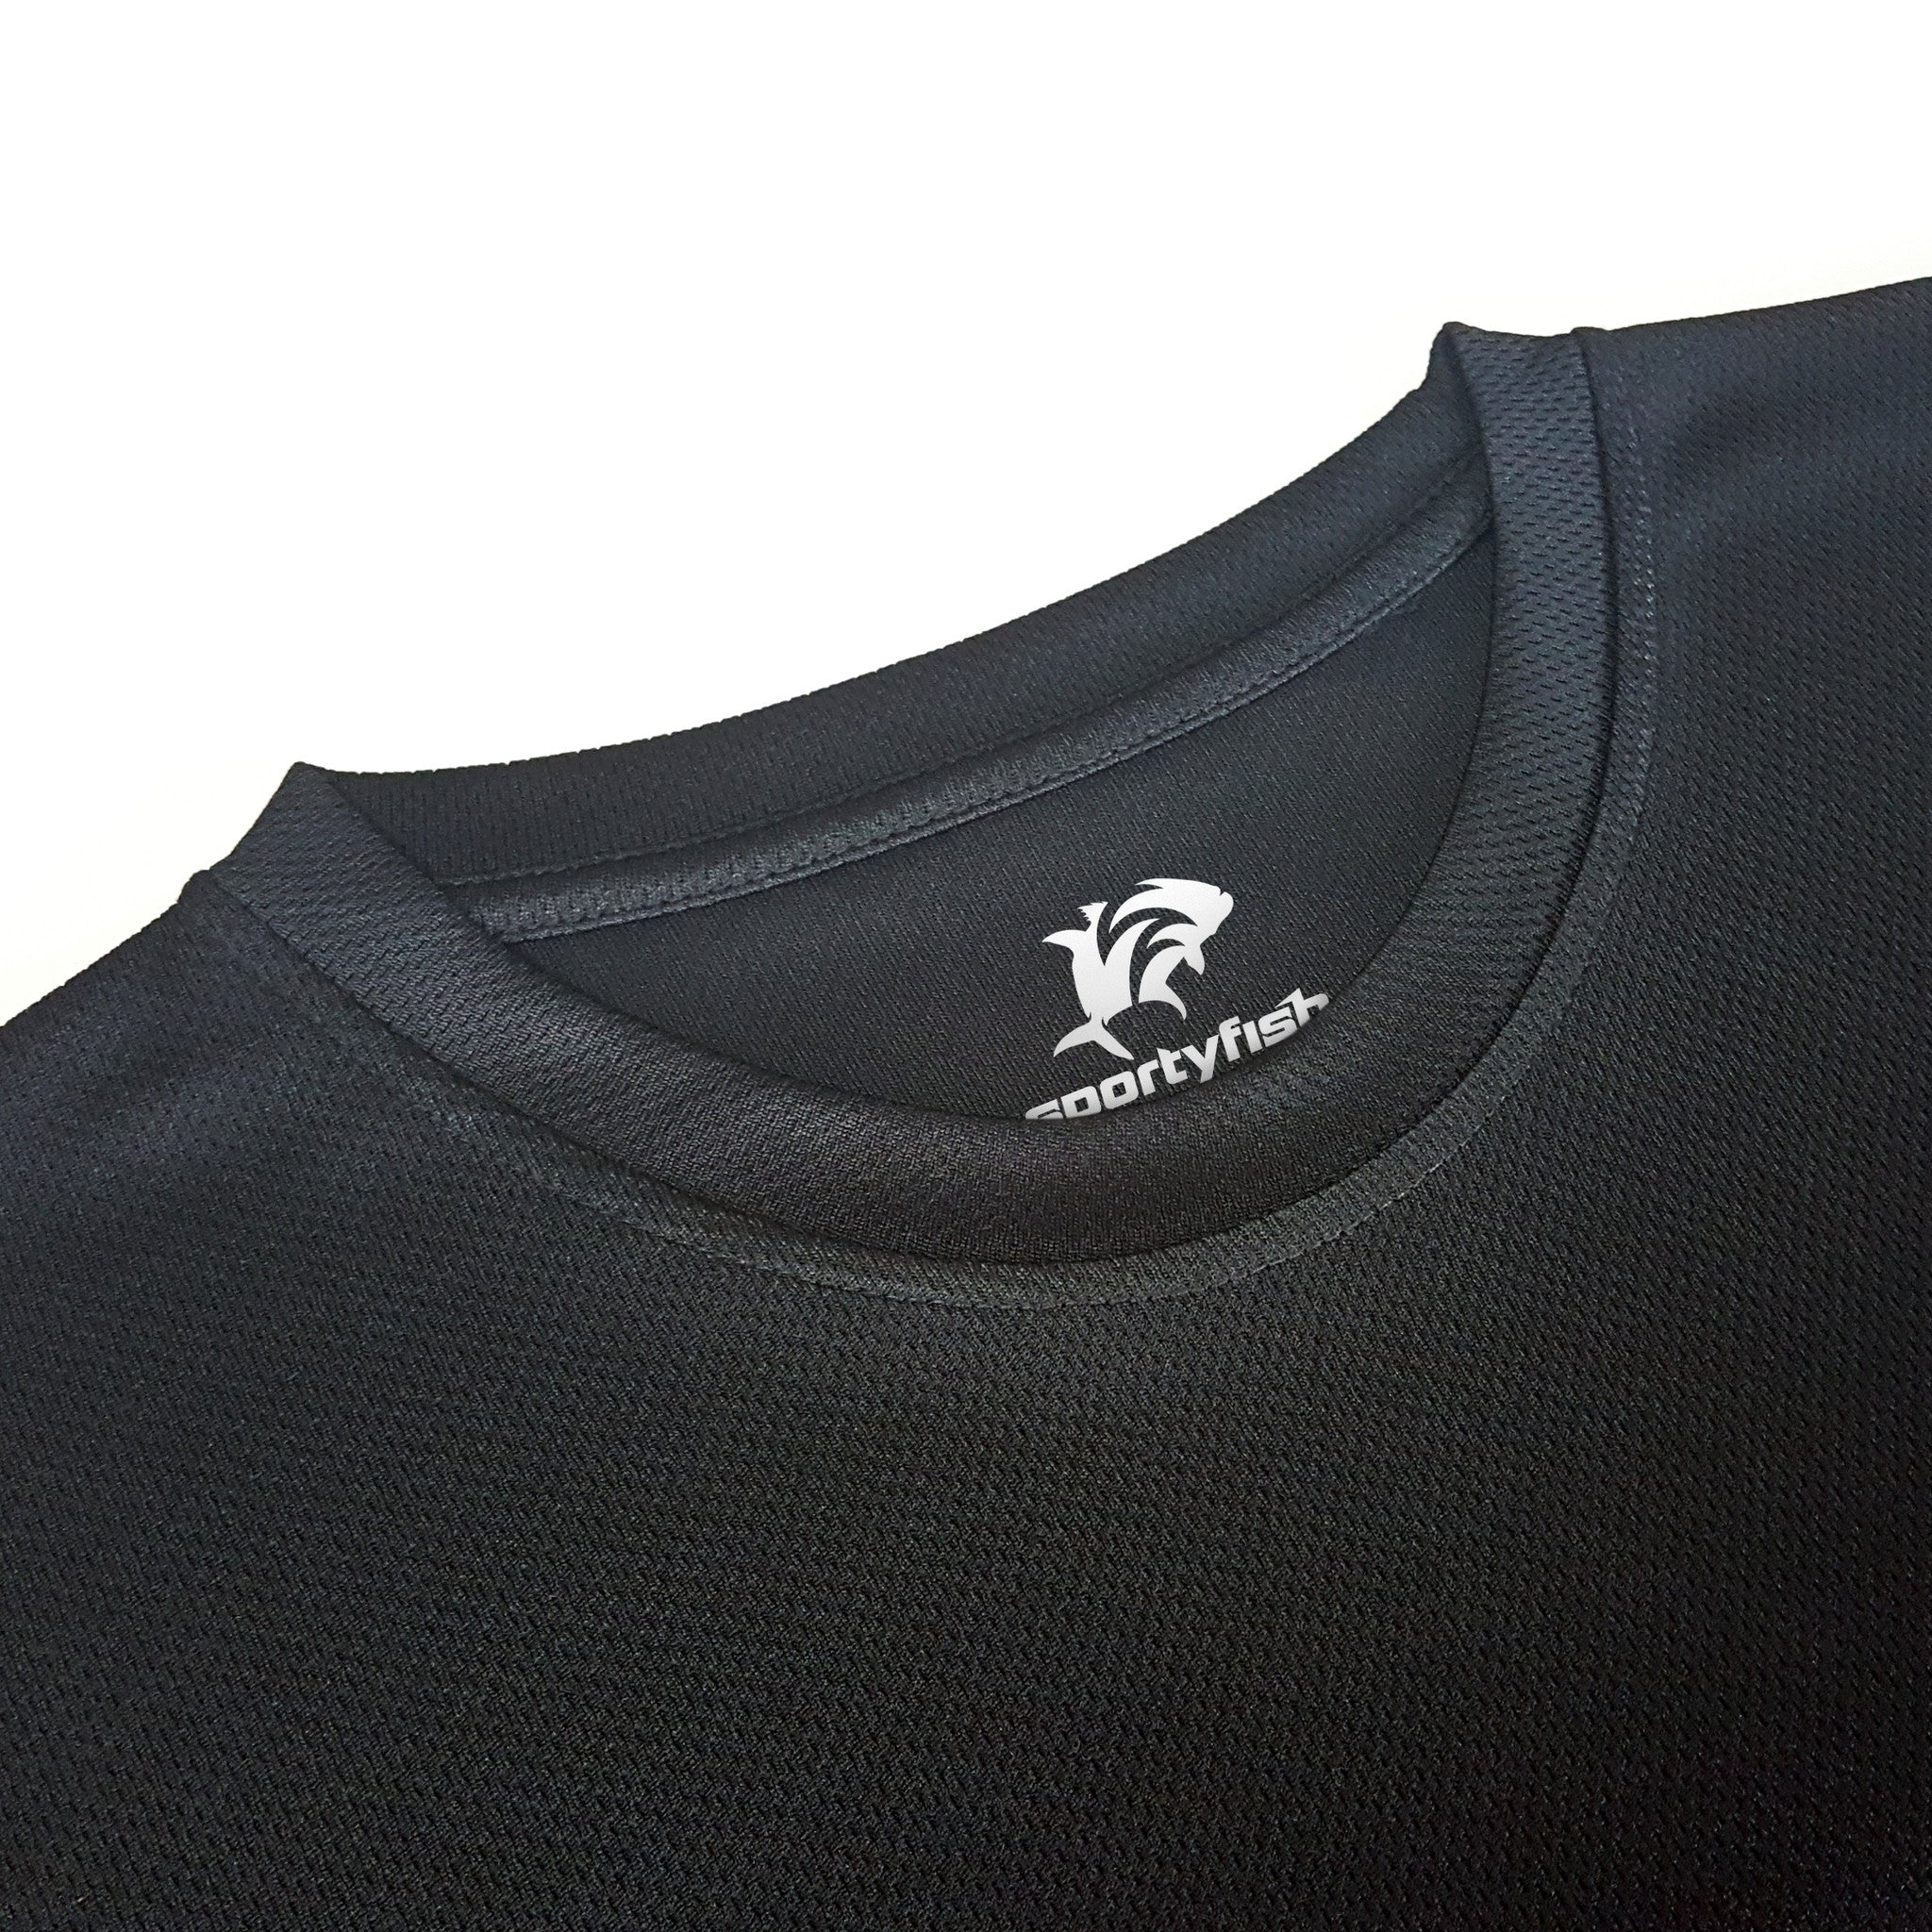 SportyFish Black Series black t-shirt: Giant Trevally close-up view 2